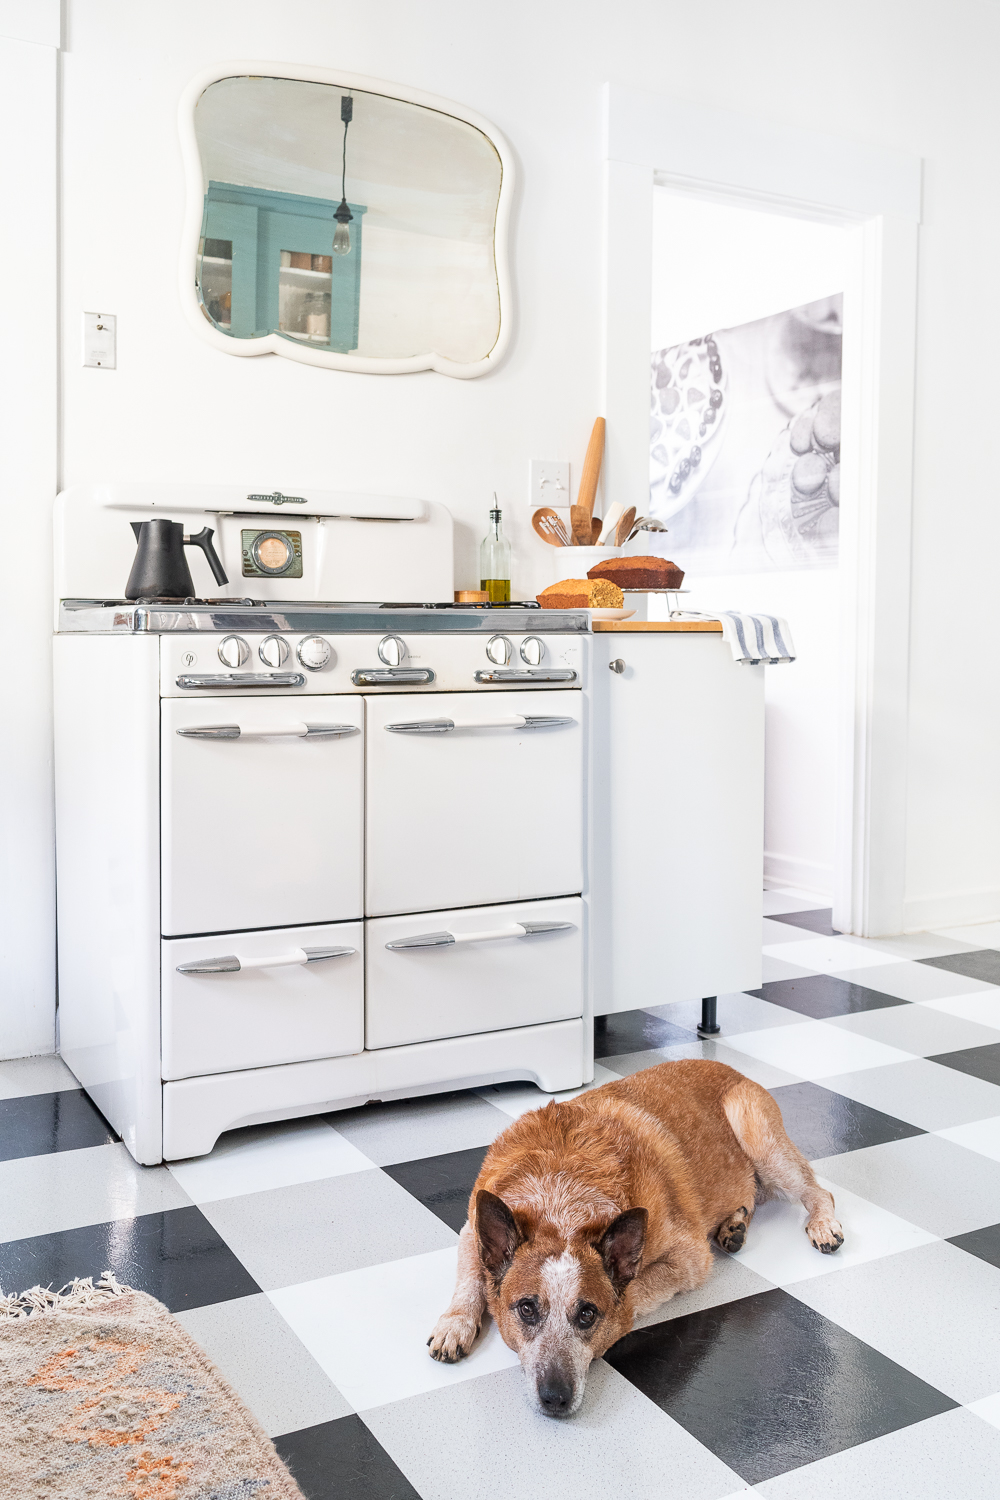 Foster Dog in Retro Kitchen with Vintage Range-0038.jpg